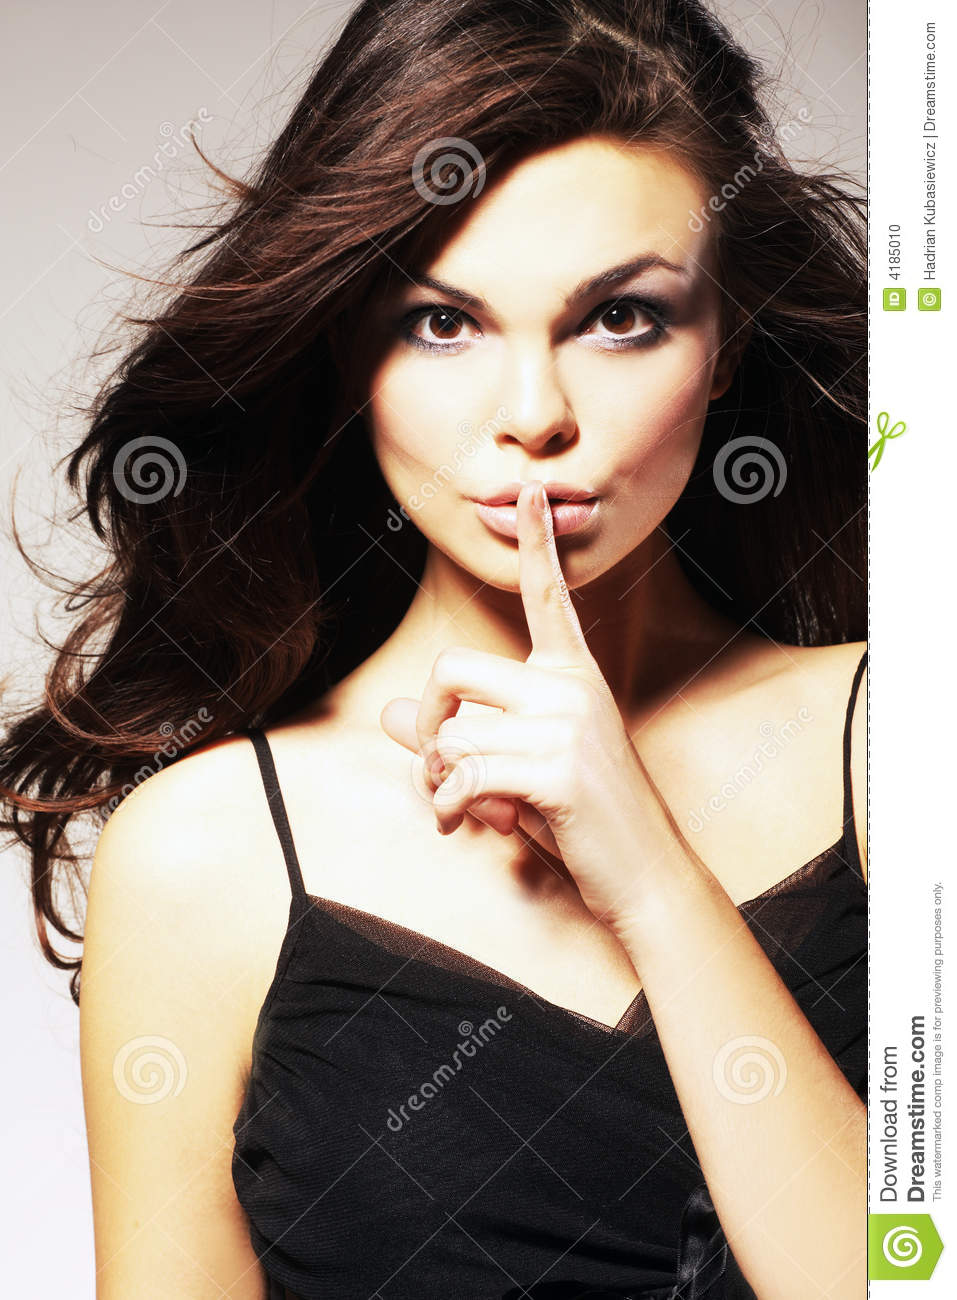 Woman Gesturing for Quiet or Shushing